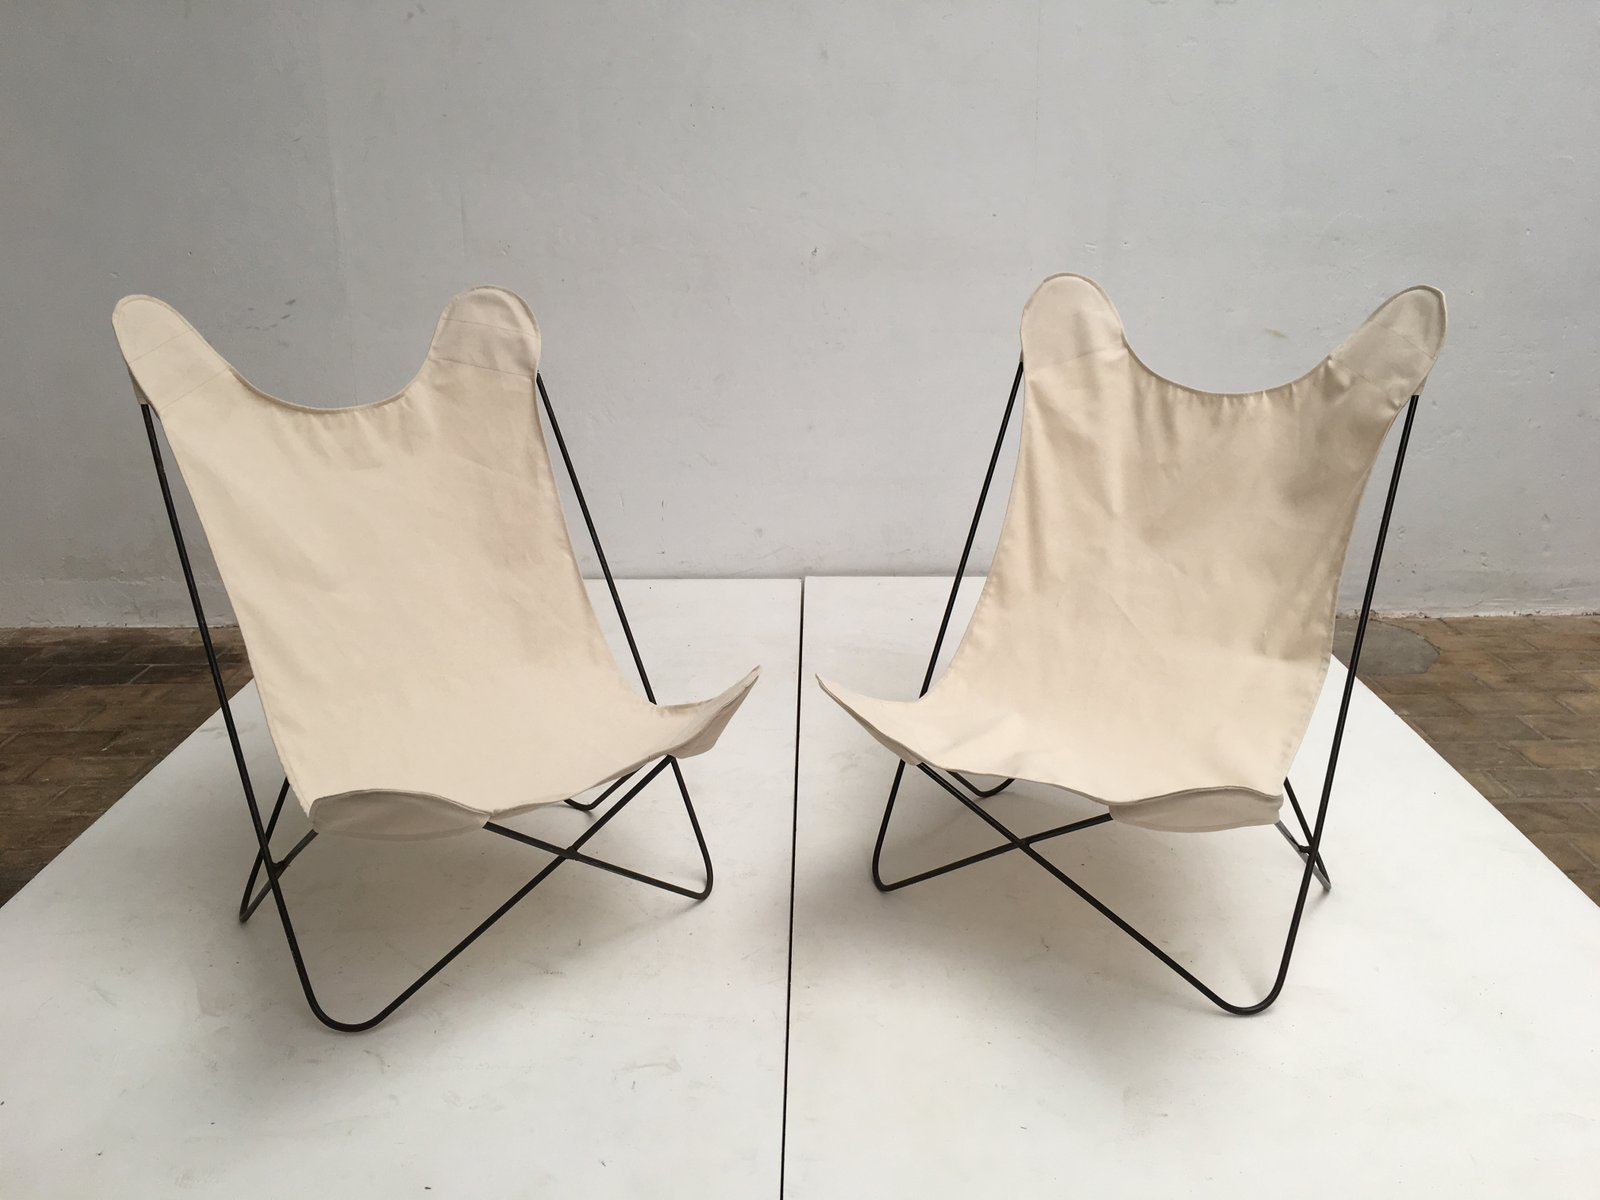 butterfly chairs with canvas seats by jorge ferrari hardoy, 1960s